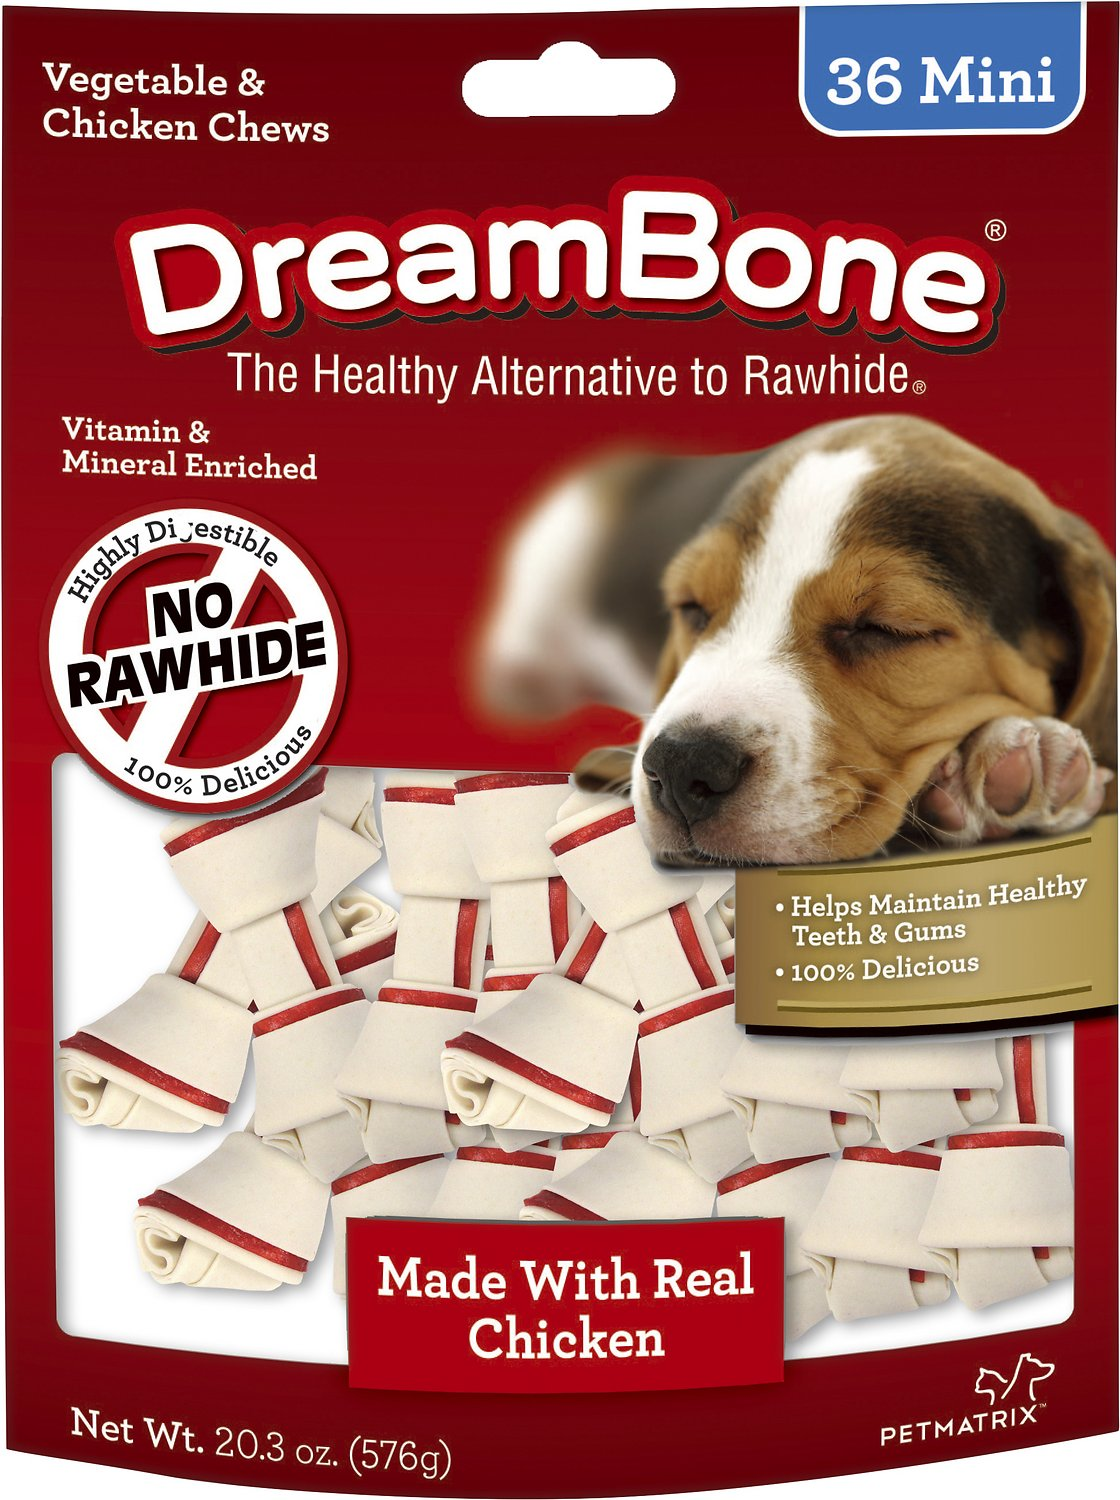 Dreambone reviews